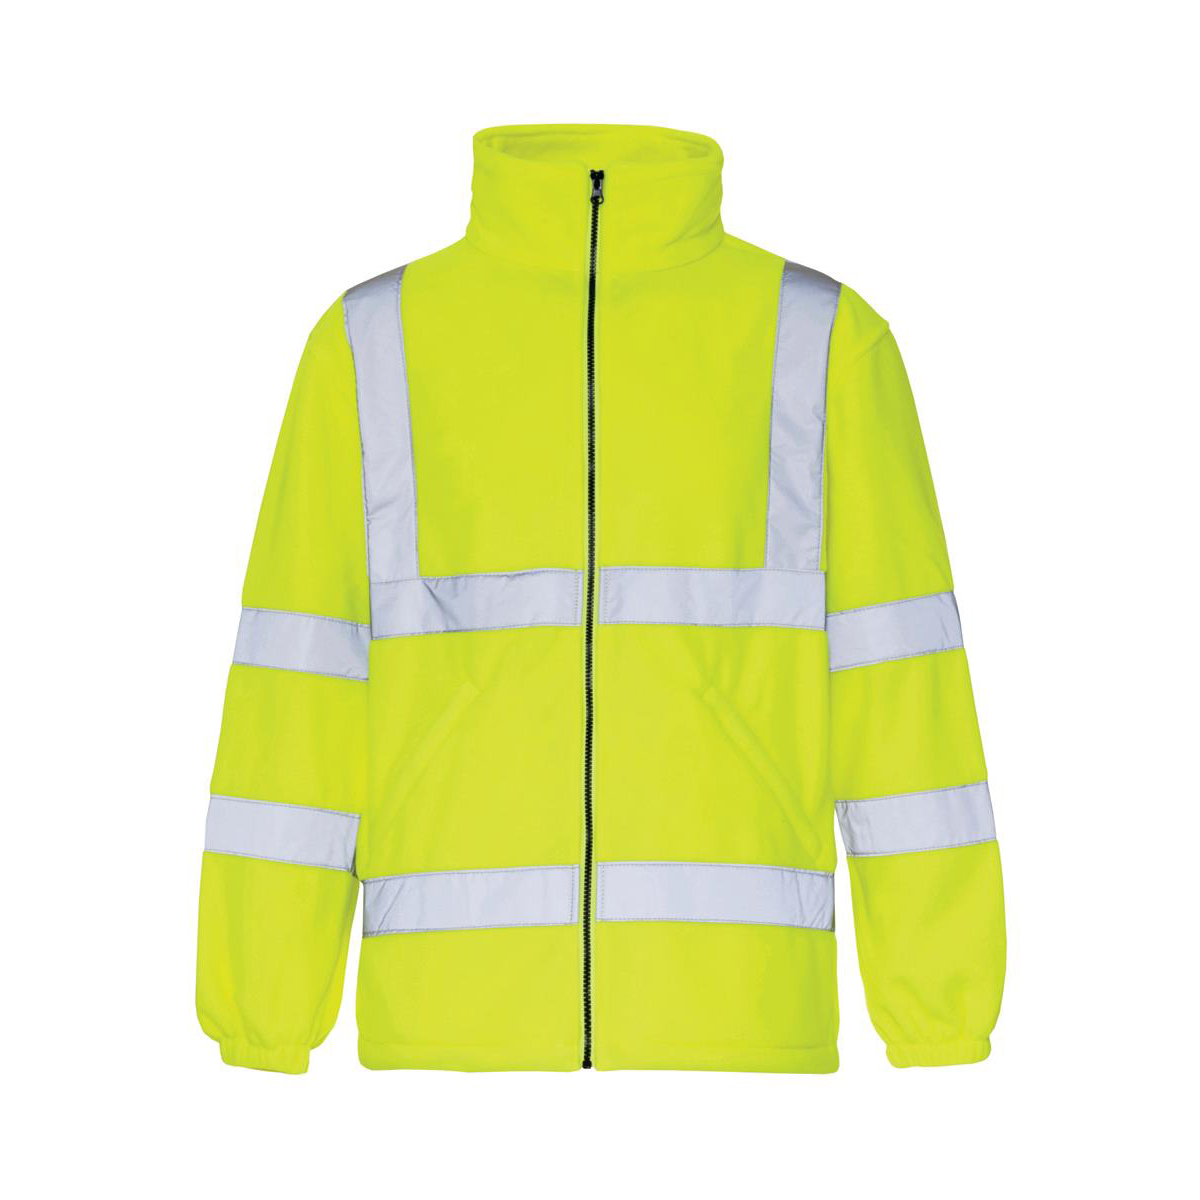 High Visibility Fleece Jacket Poly with Zip Fastening Large Yellow Approx 2/3 Day Leadtime